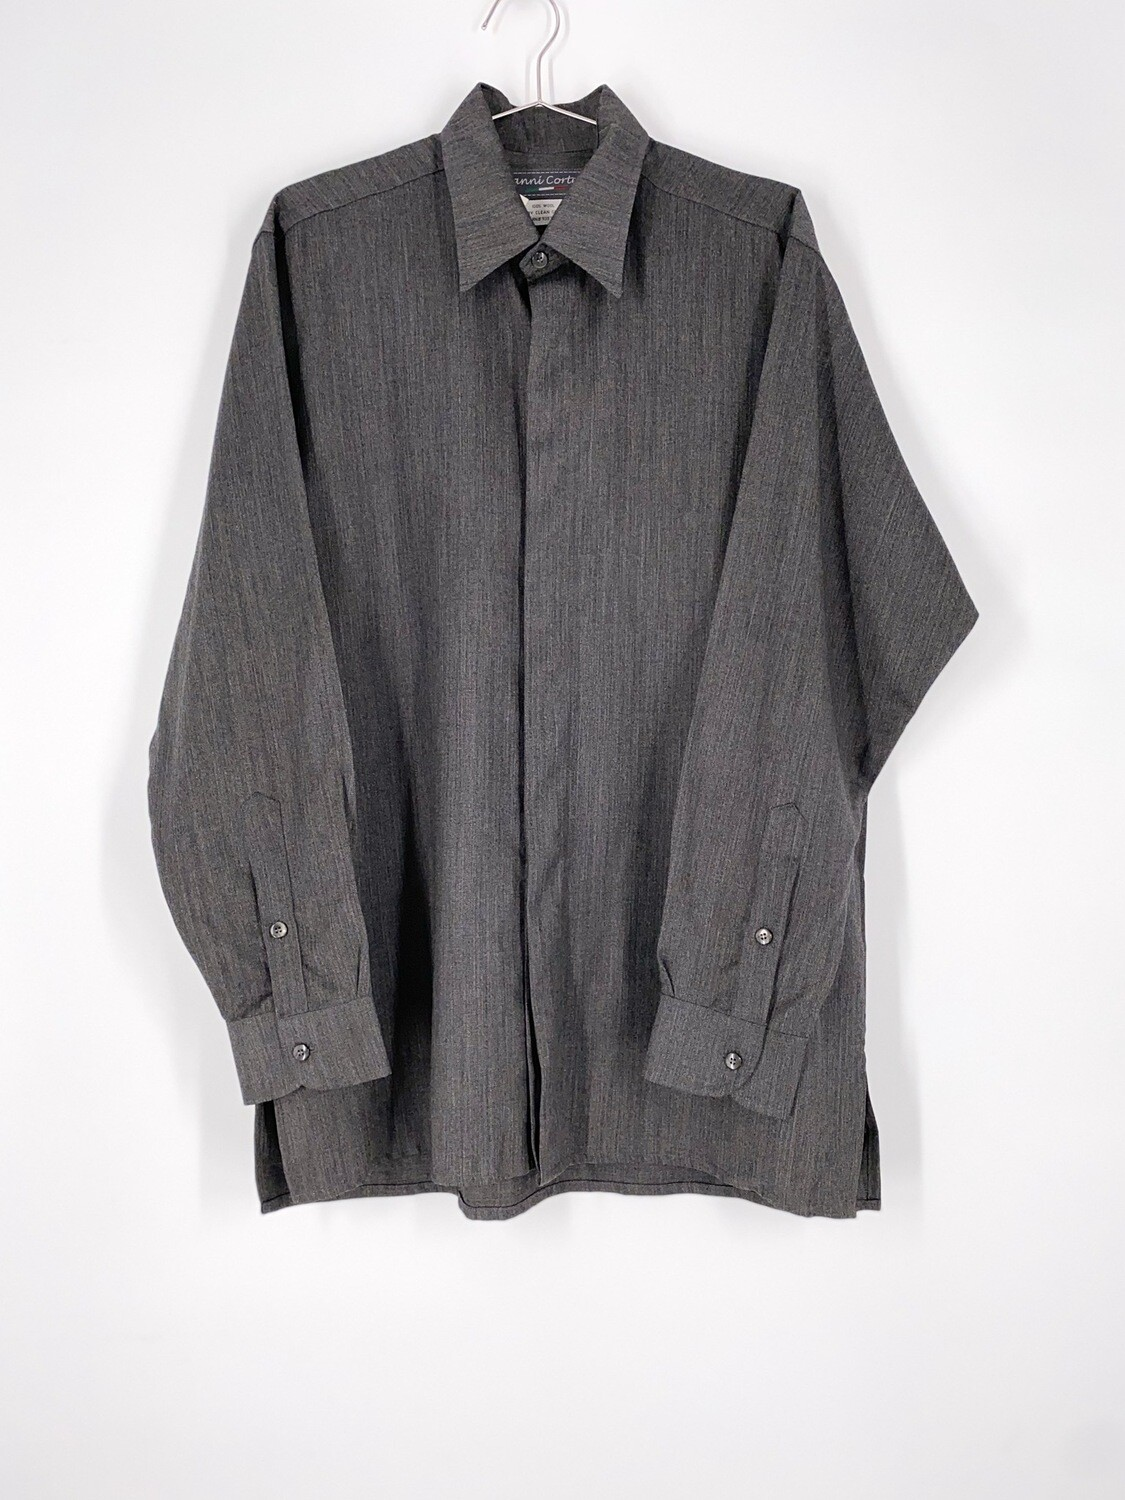 Grey Wool Button Up Size L